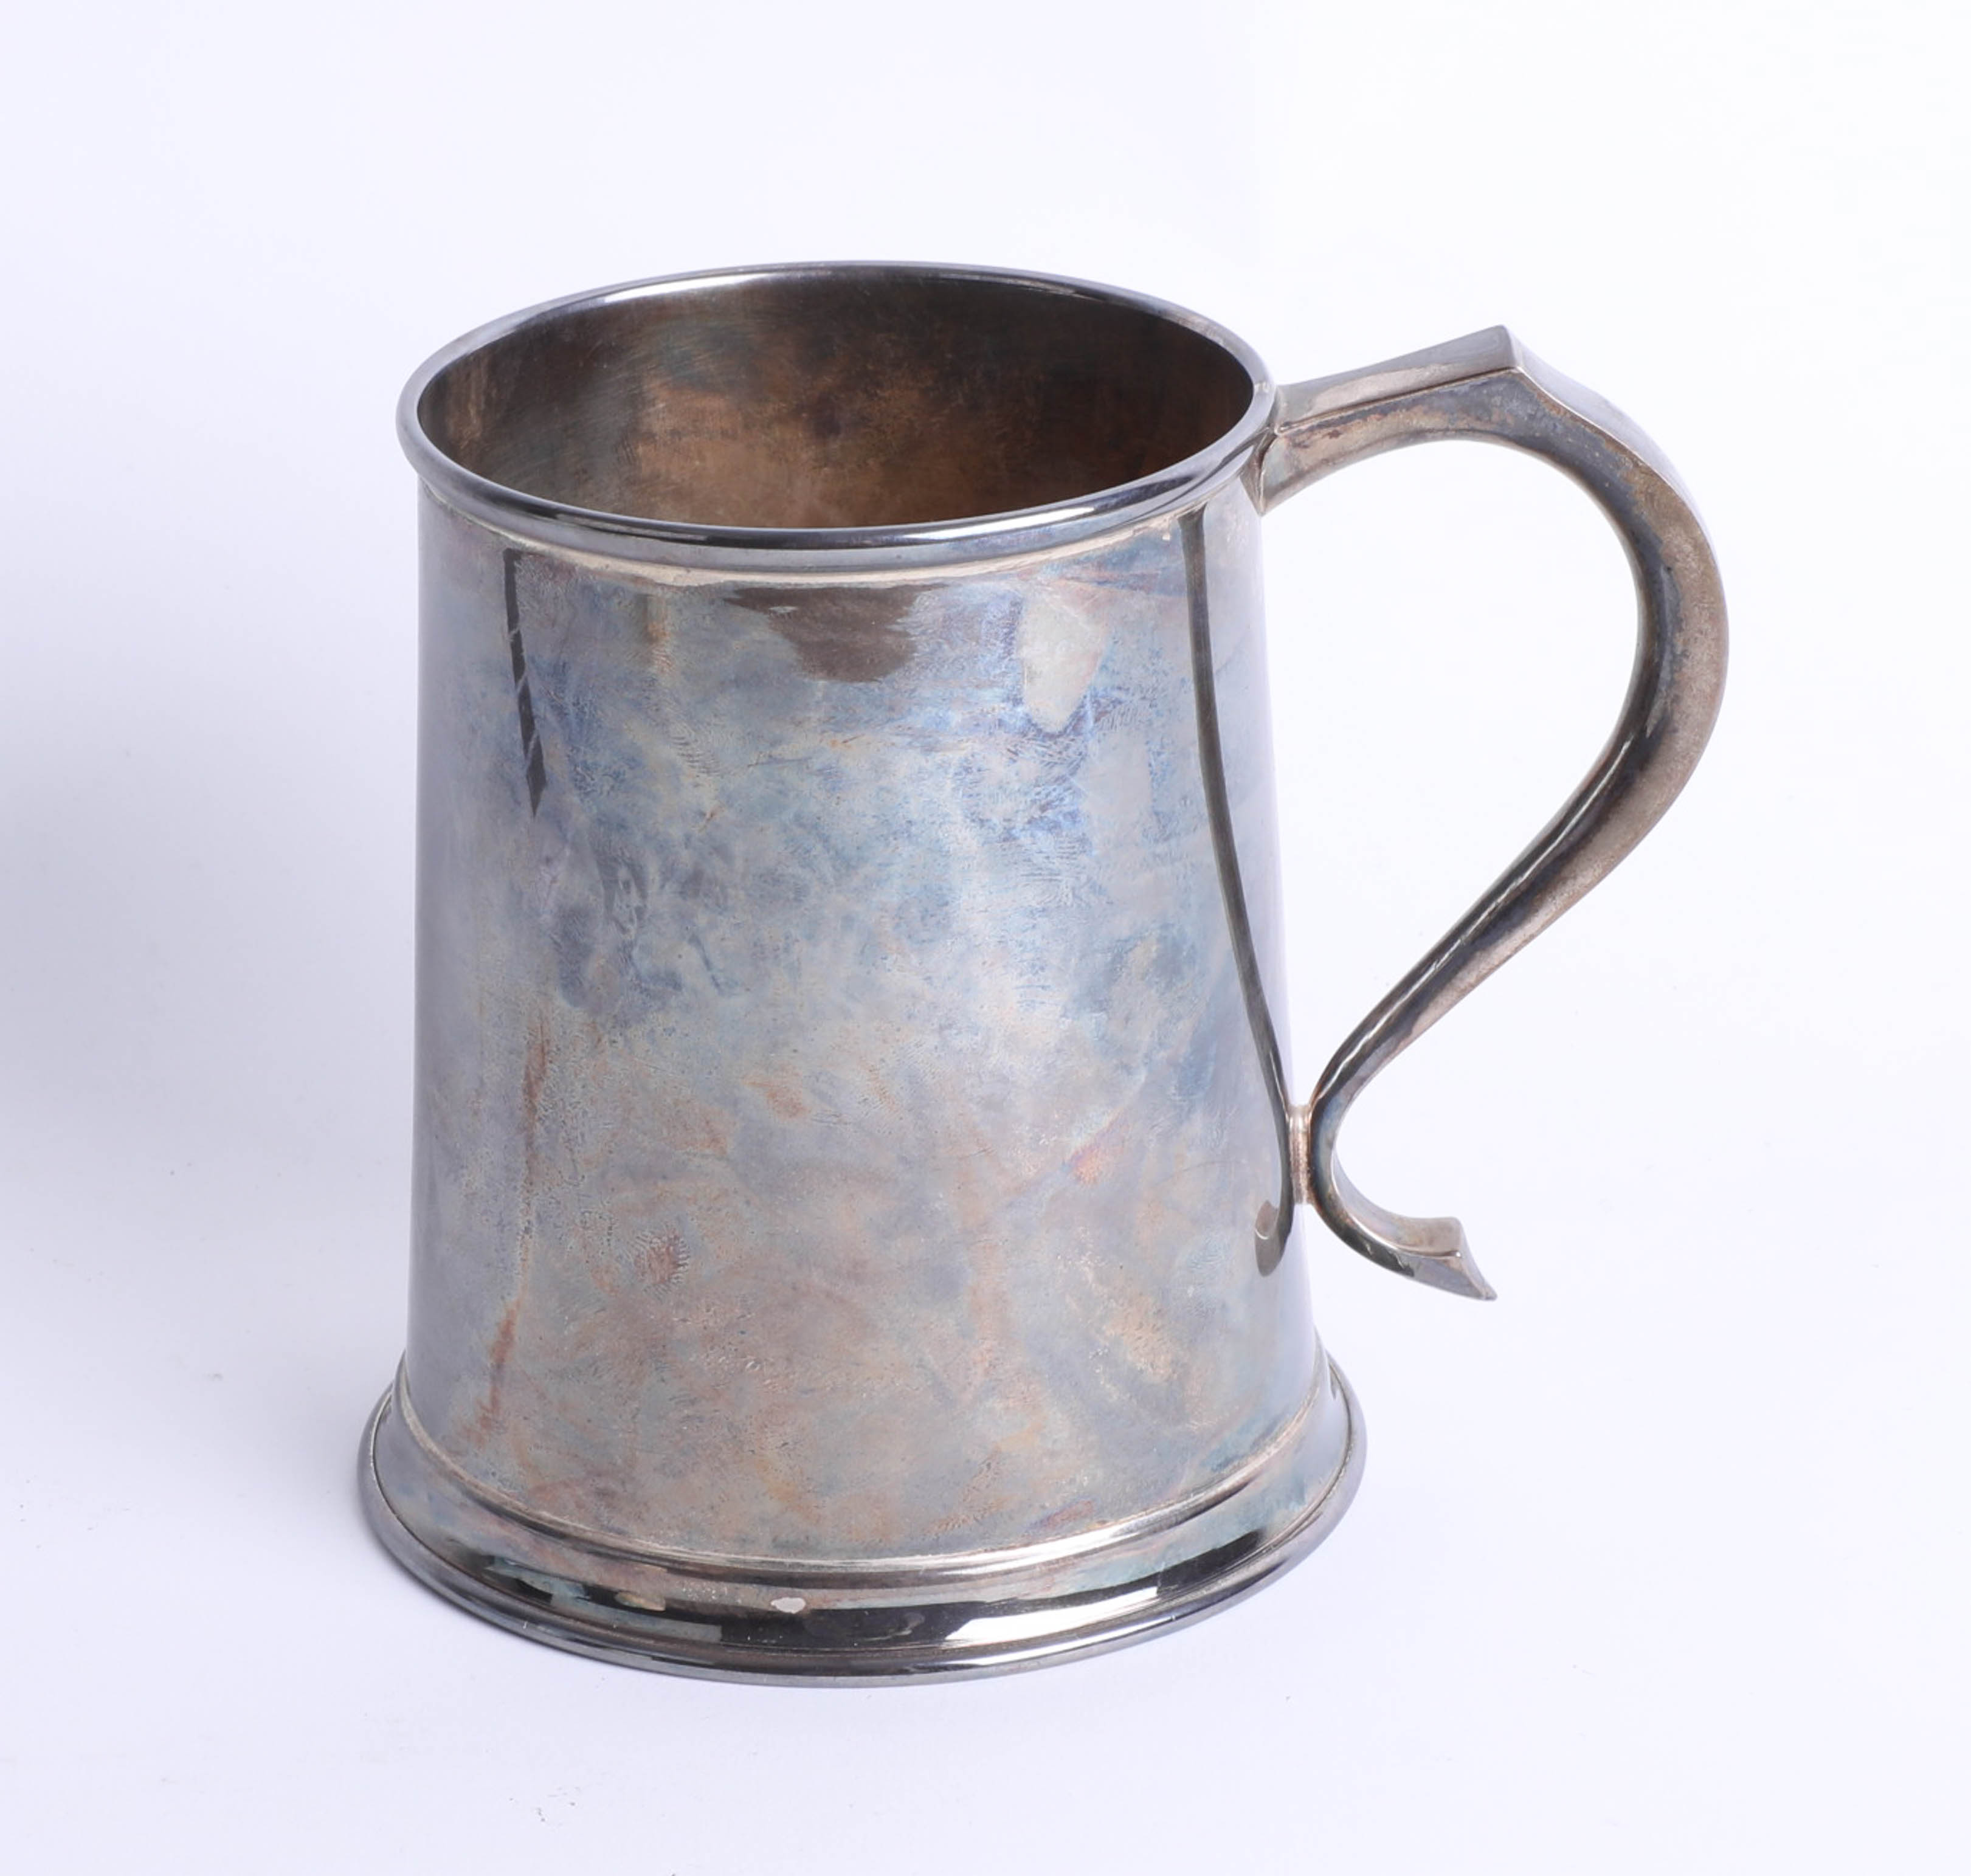 Lot 019 - Silver pint tankard with plain body and scroll handle, London, Maker: A.C. & Co, height 12.1cm,